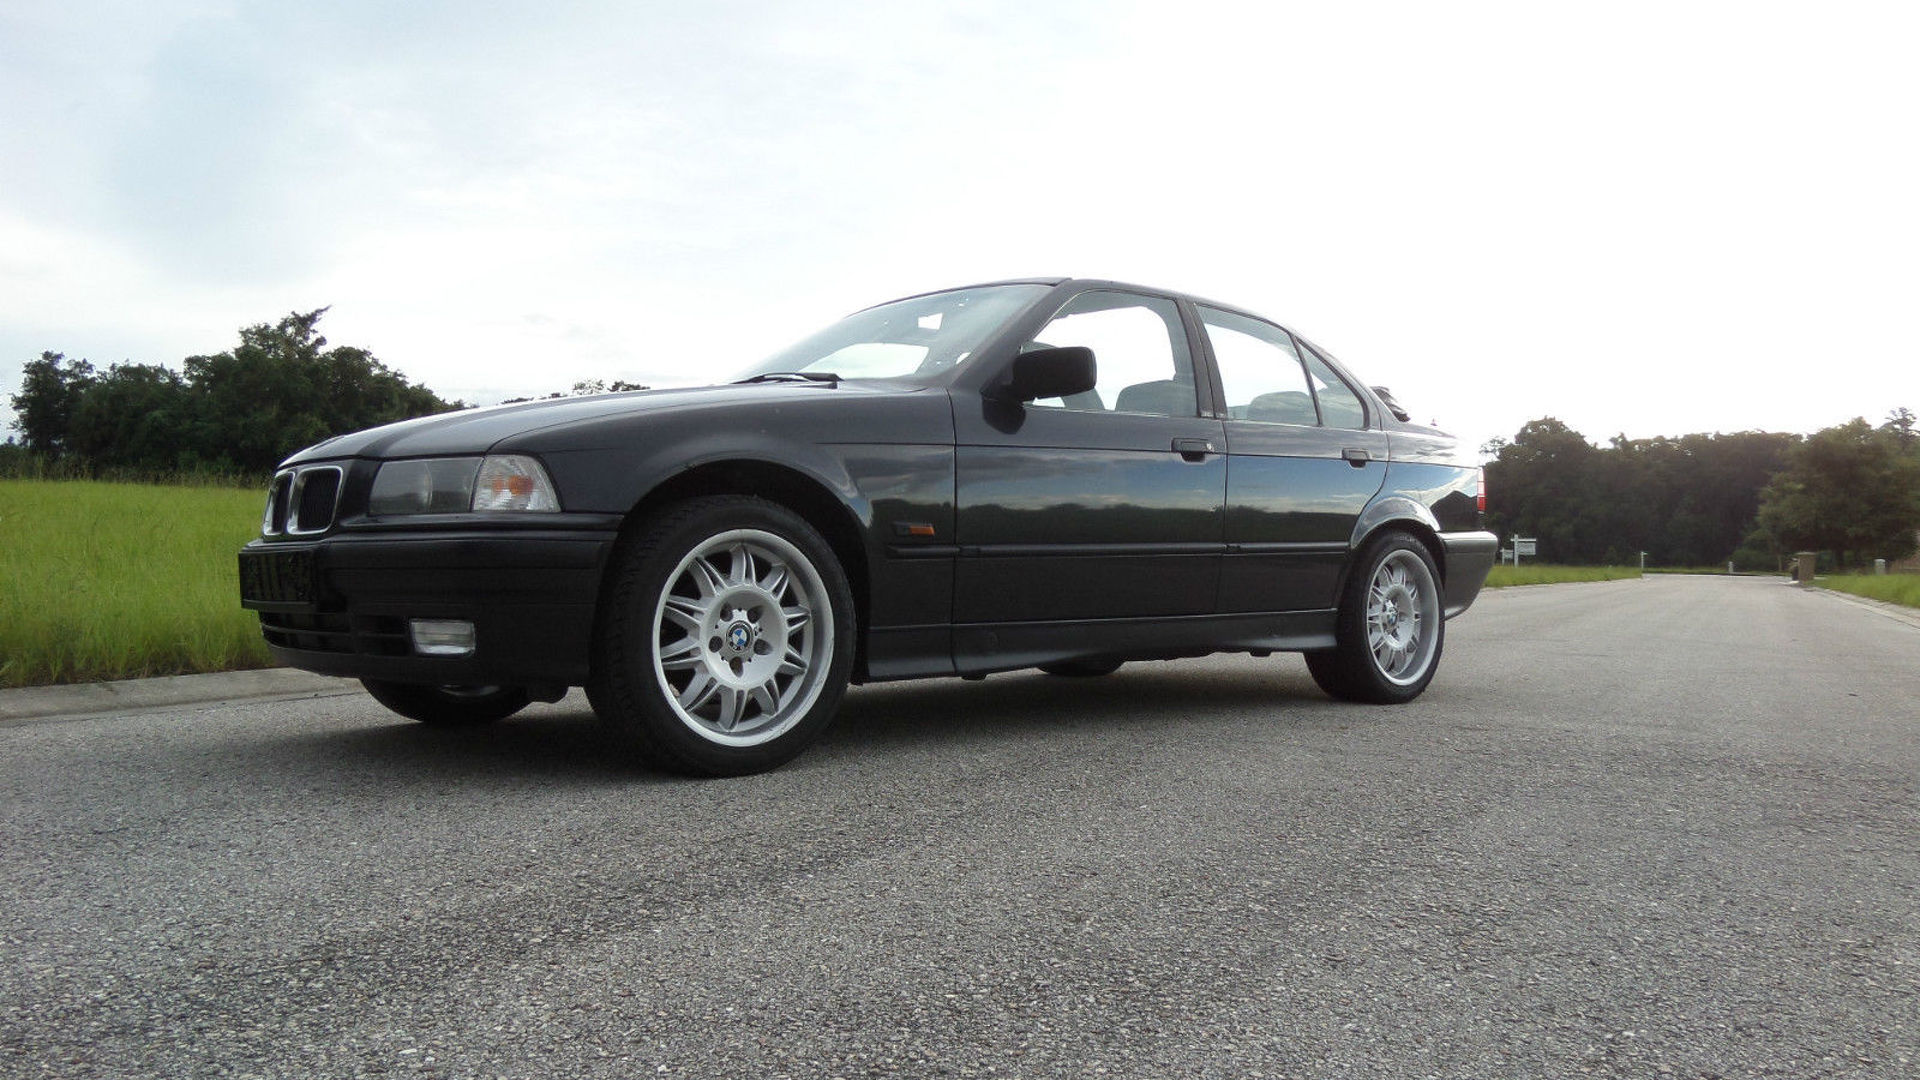 The only Baur BMW 318i in the U.S. is for sale